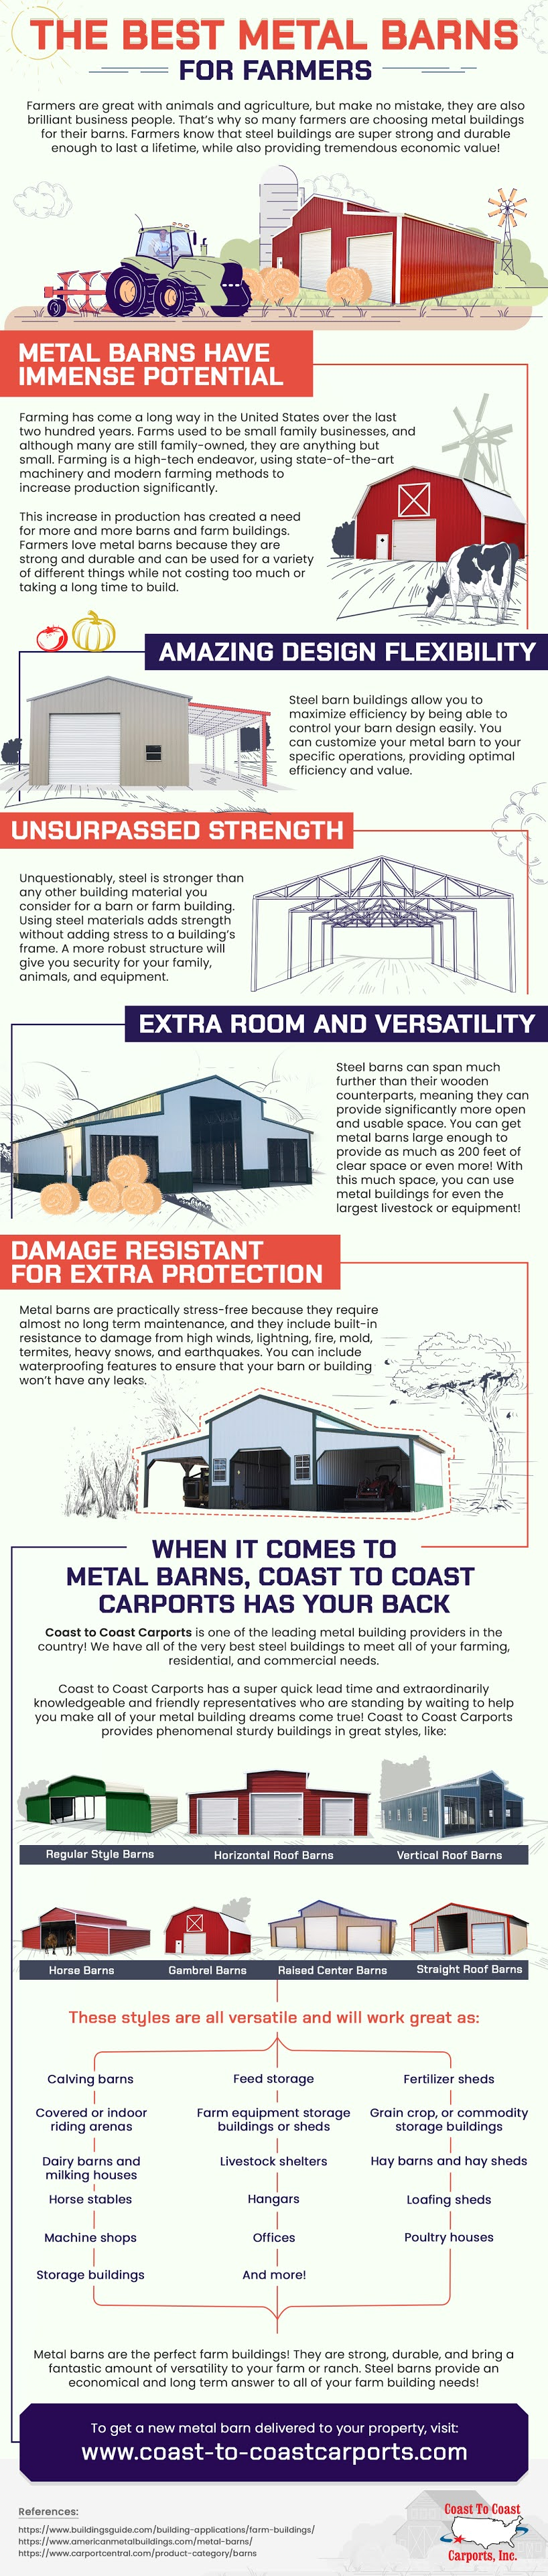 The Best Metal Barns for Farmers #infographic #Barns #infographics #Metal Barns #Farmers